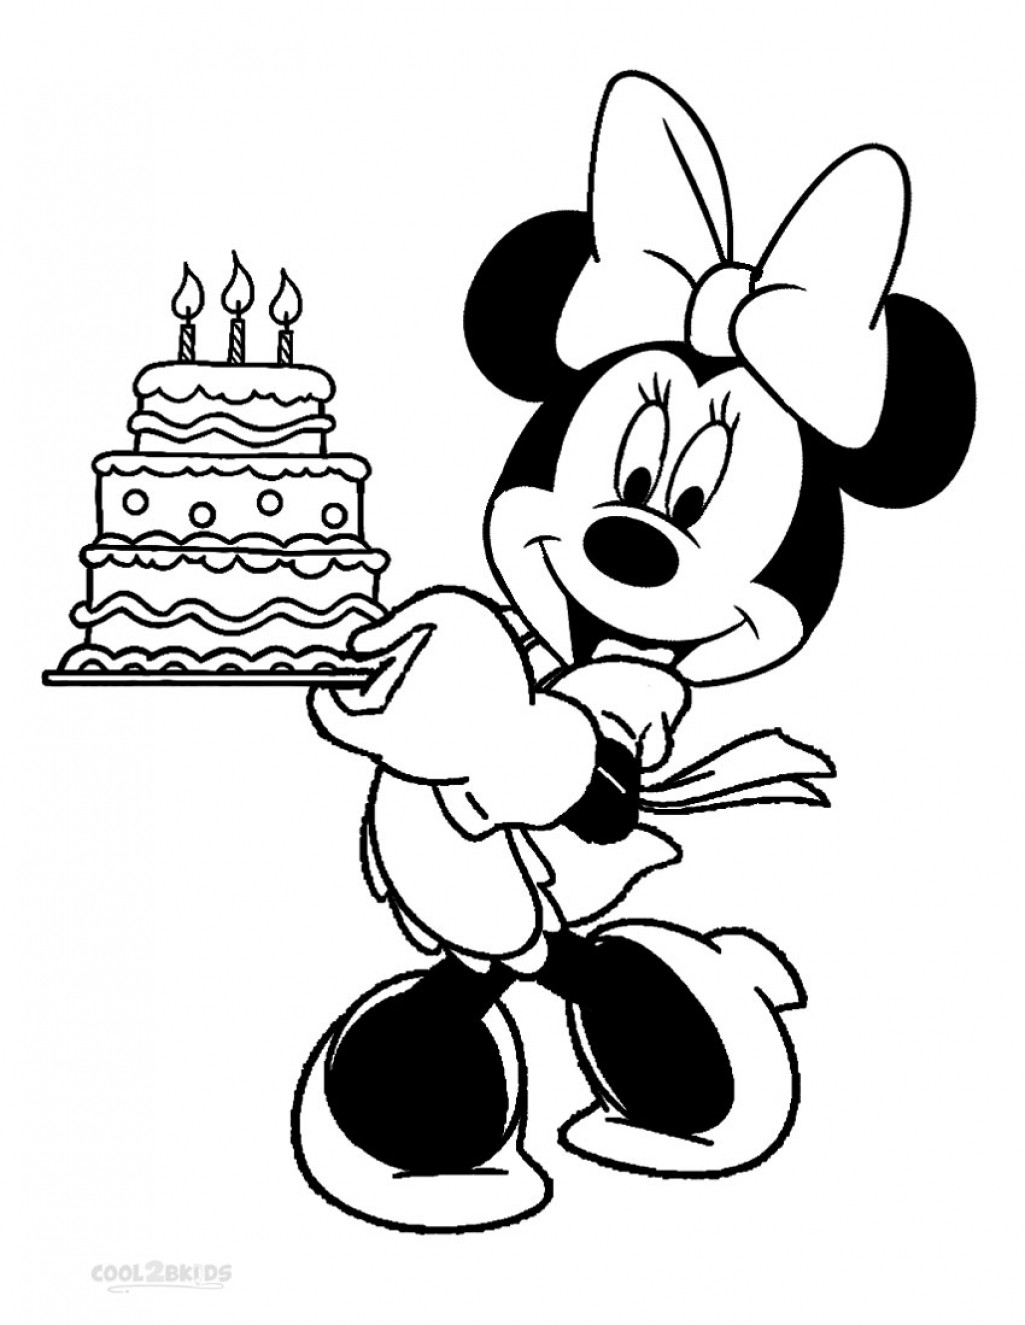 1025x1325 Baby Mickey Mouse Coloring Pages To Print Copy Free Disney Minnie